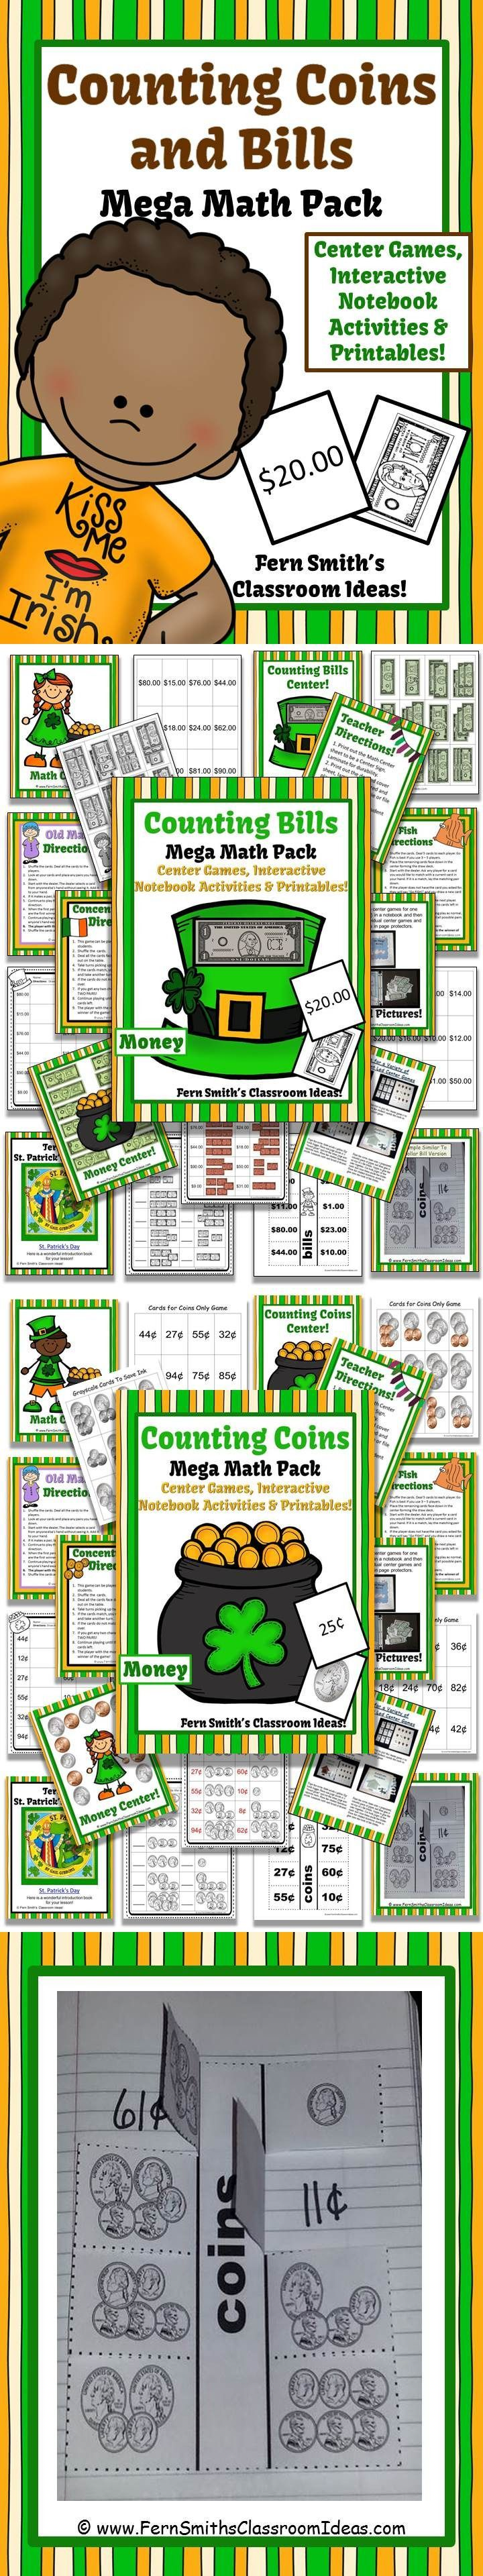 worksheet Counting Bills 345 best money activities for k 3rd grade images on pinterest st patricks day counting coins and bills mega math pack with two freebies